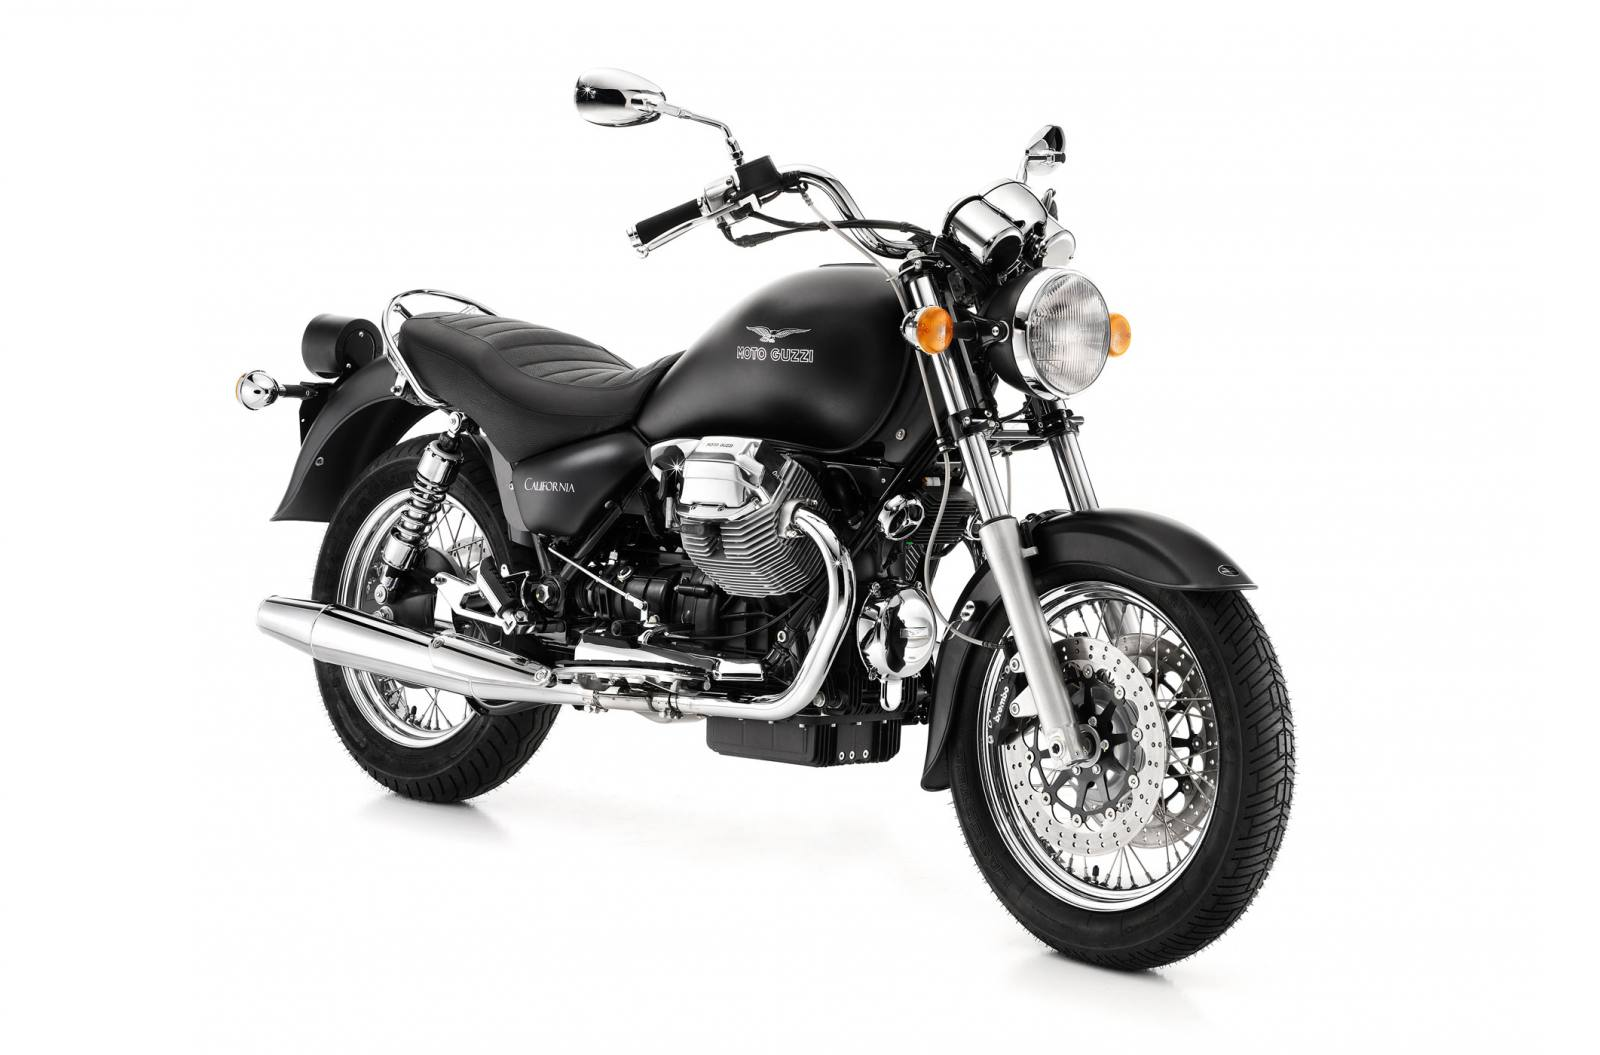 2011 Moto Guzzi California Black Eagle, motorcycle listing